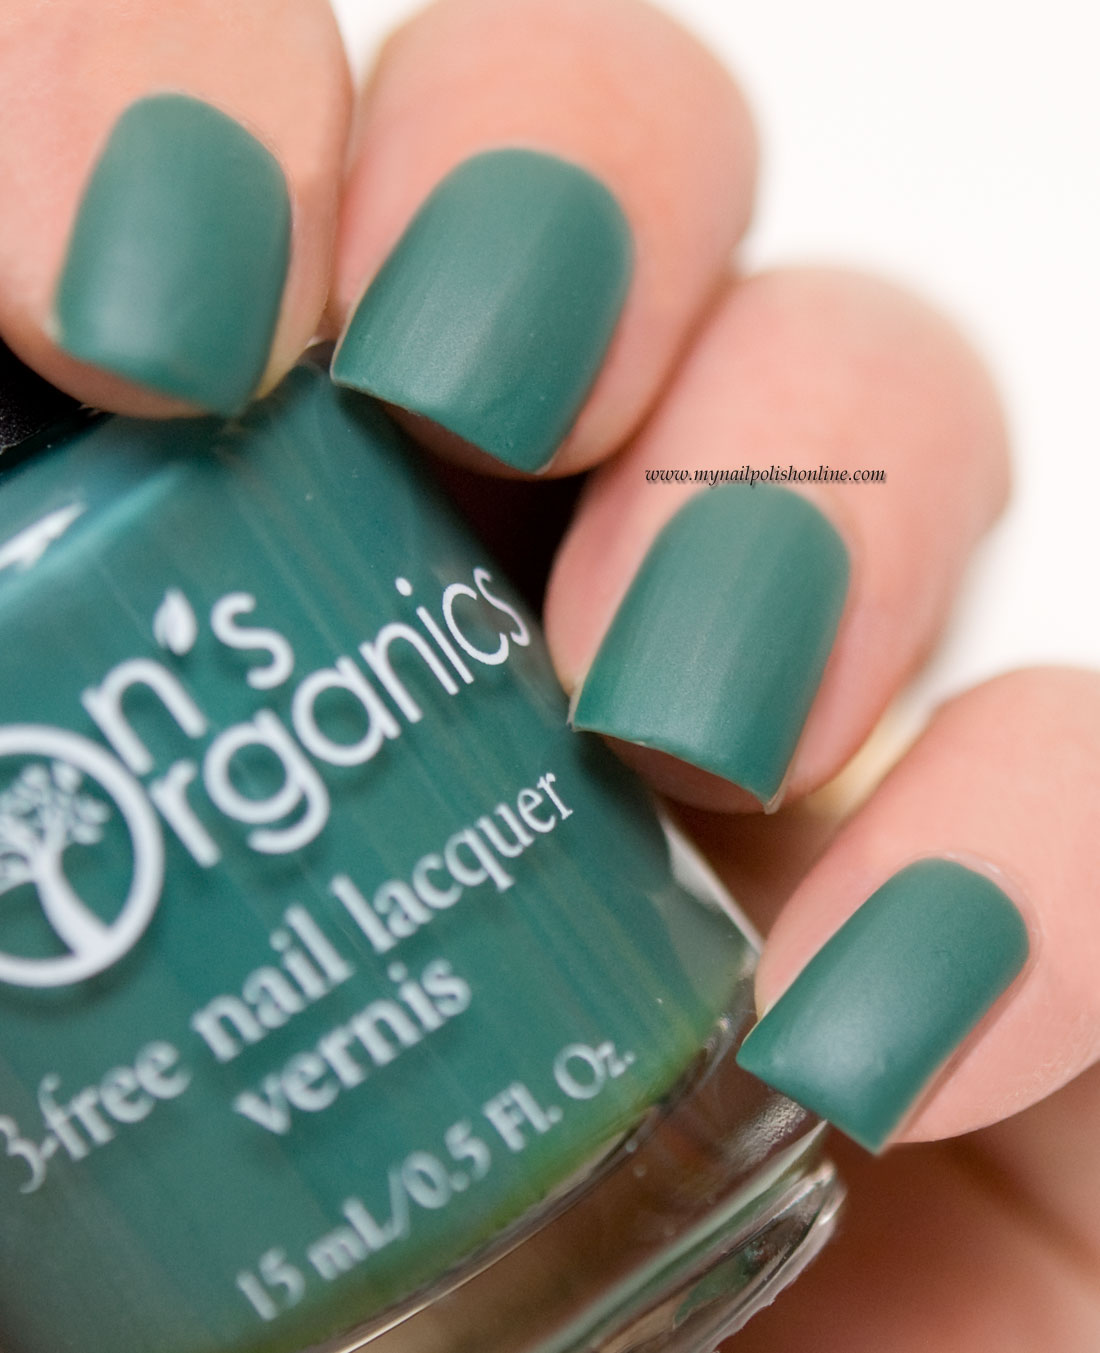 Ellison's Organics - Toteally Matte About You